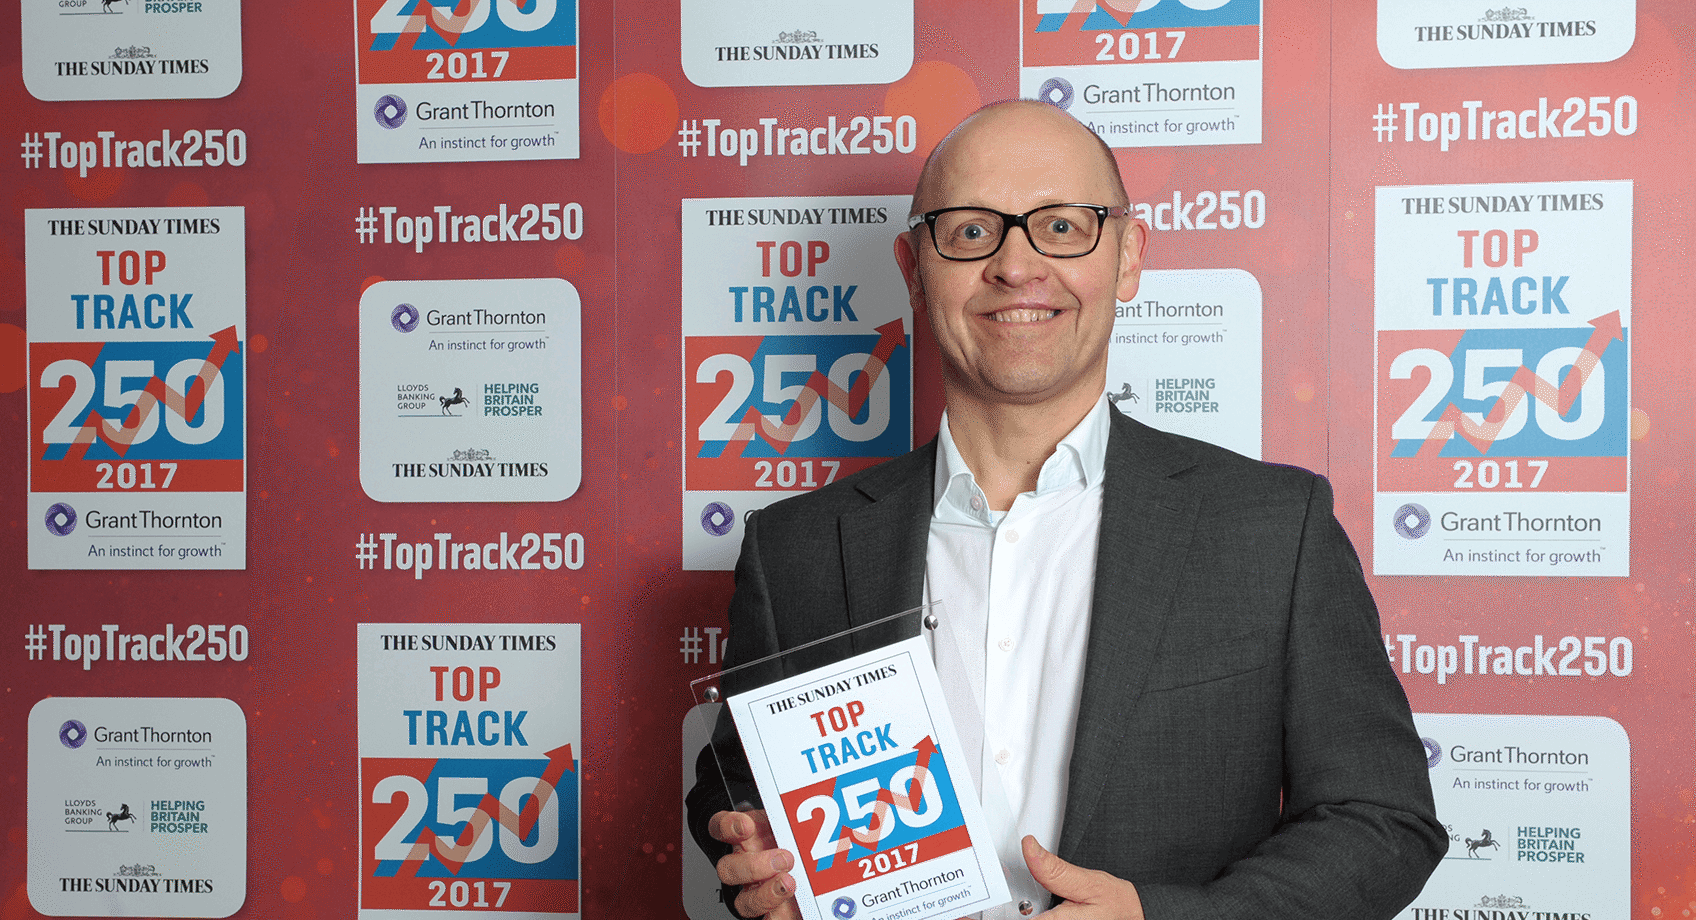 Sunday Times Top Track 250 Awards Dinner image